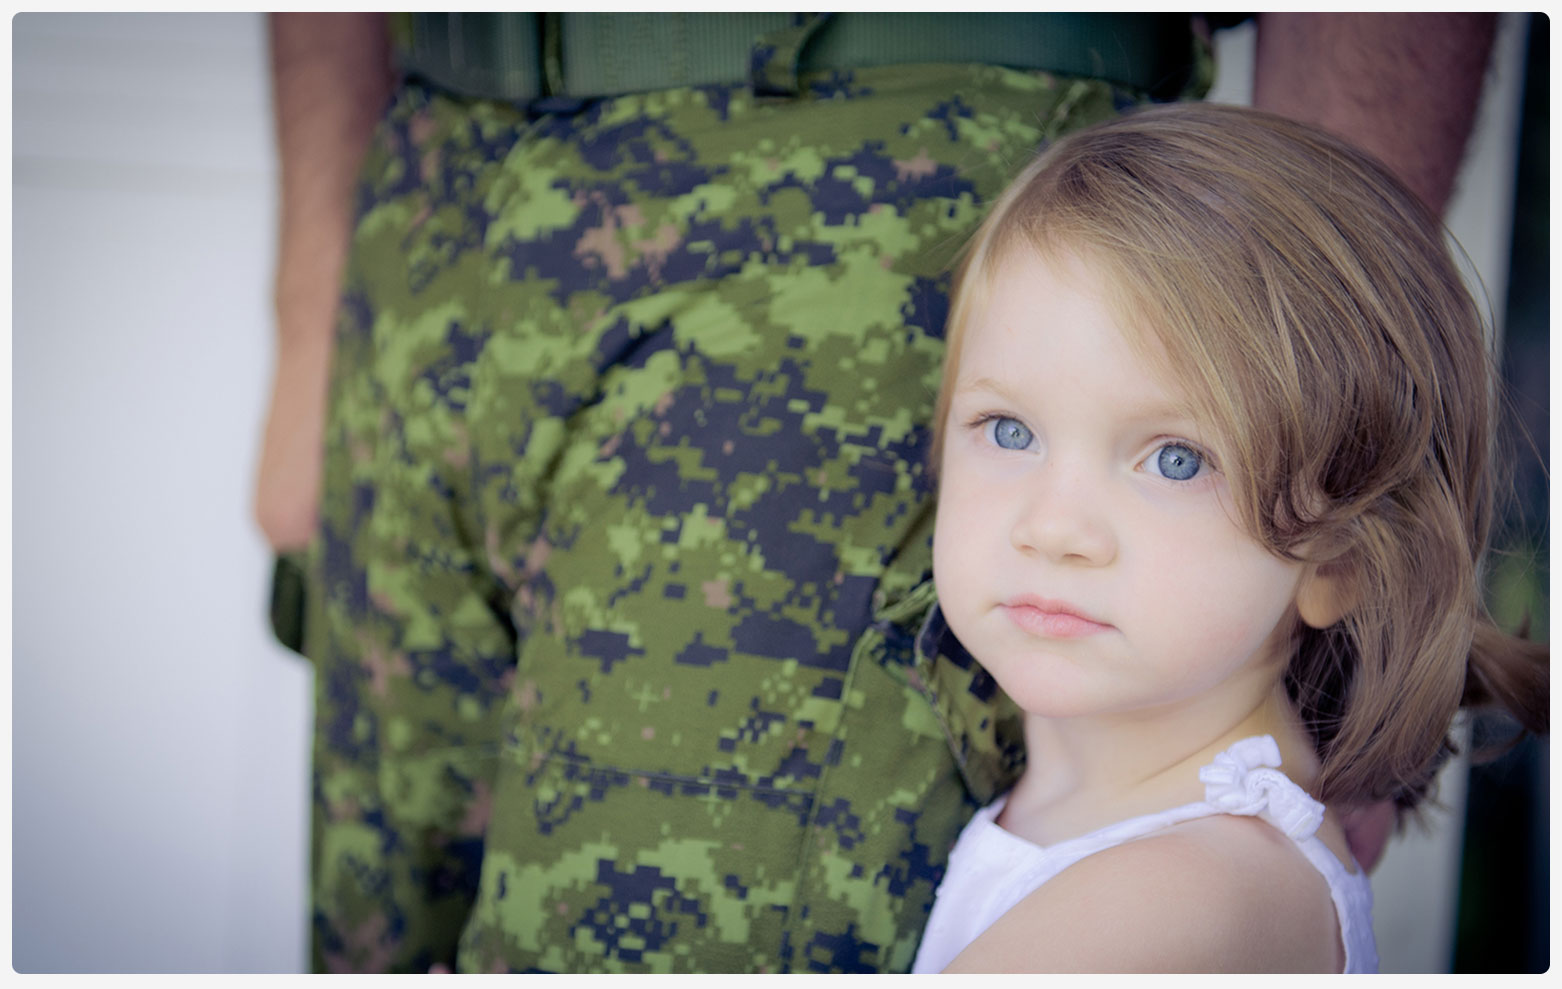 An image of a young girl beside a man in military fatigues